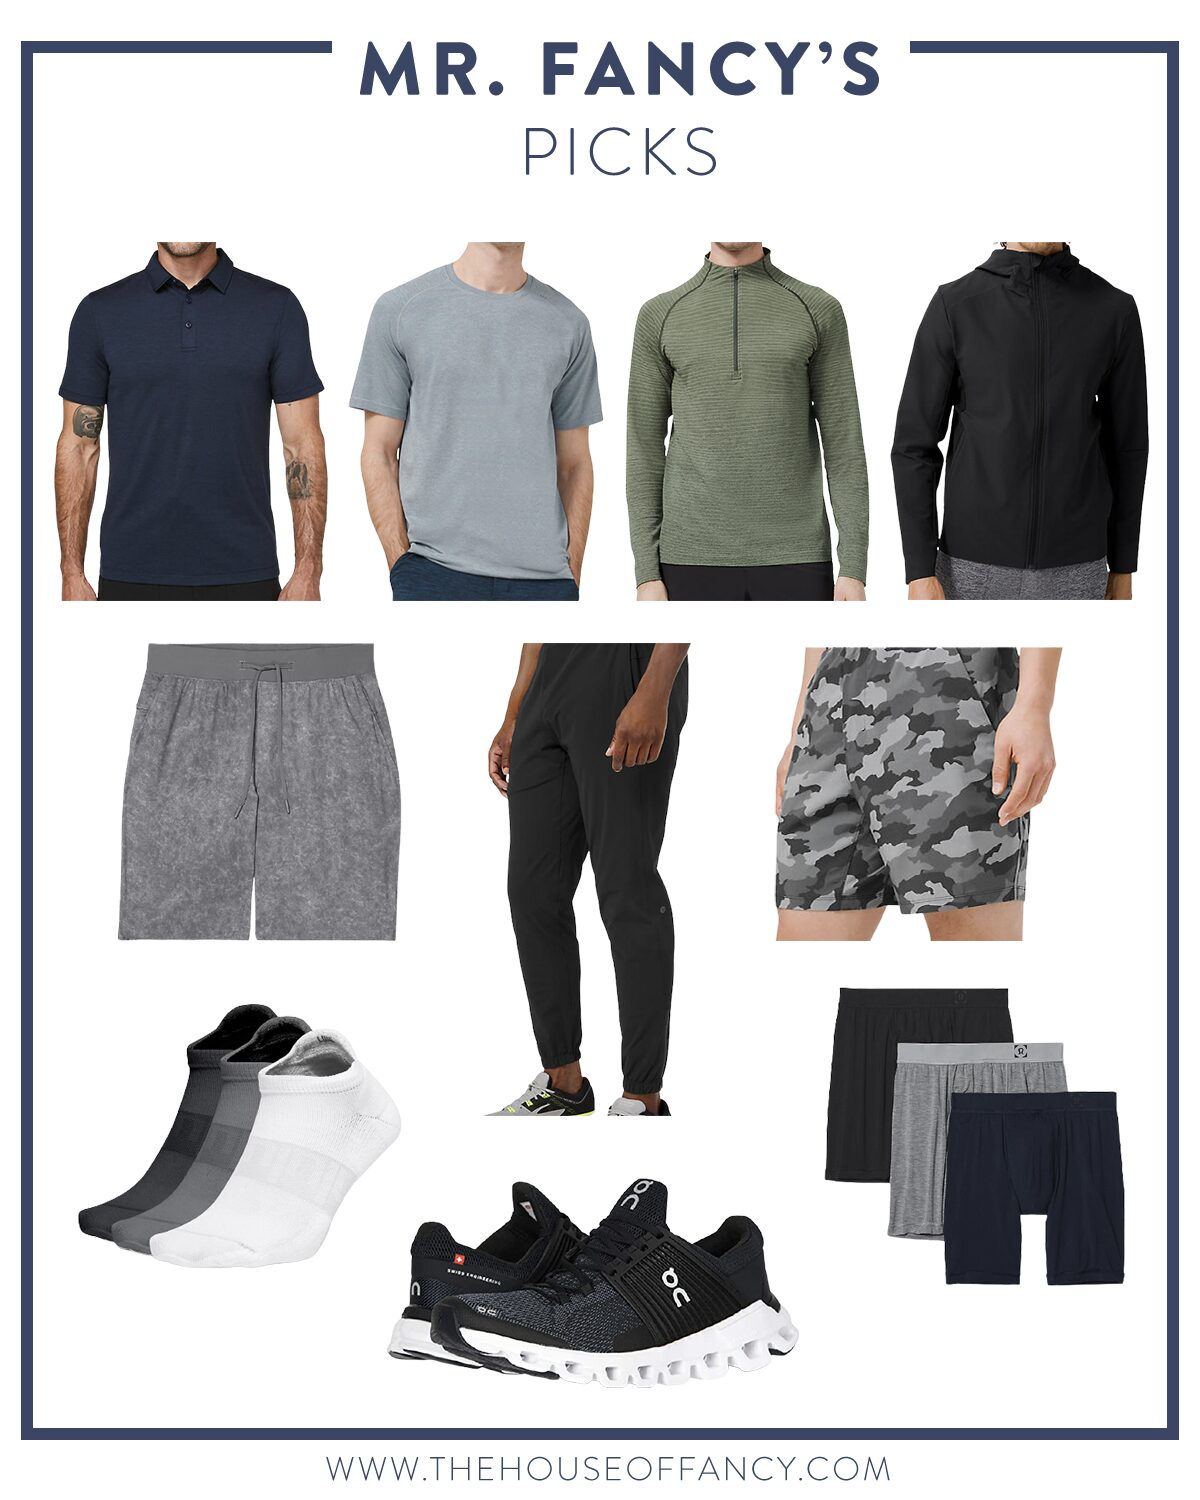 Men's Workout Gear by popular Houston fashion blog, The House of Fancy: collage image of Lululemon shirts, shorts, joggers, boxers, sneakers, and socks.